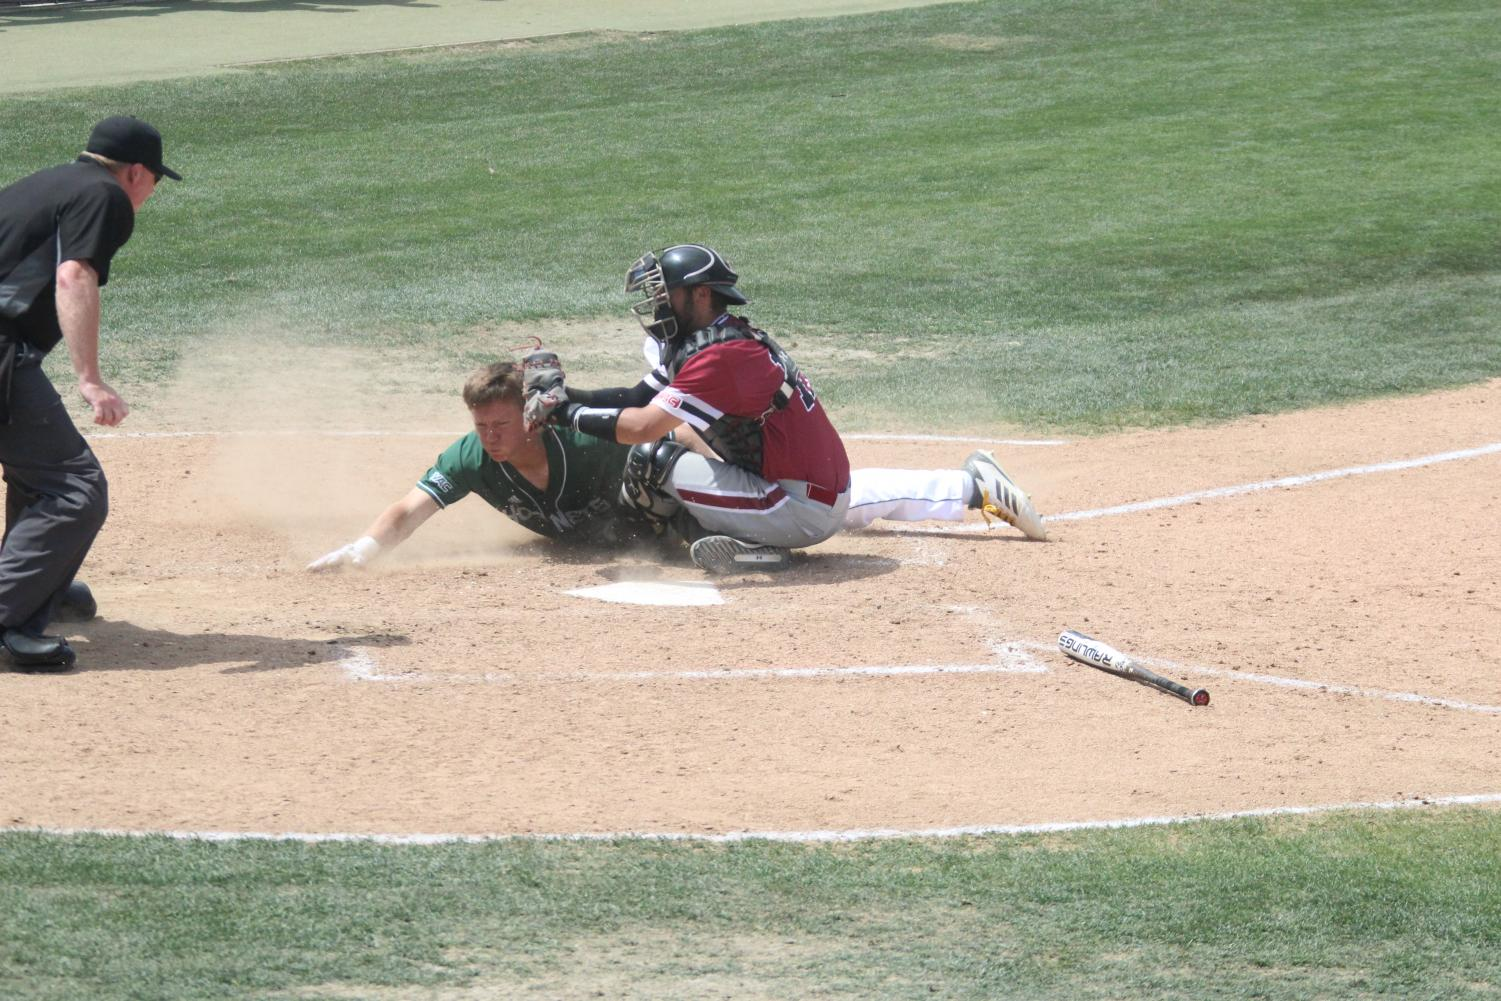 Sacramento State junior outfielder Matt Smith dives head first in an attempt to score, but is called out  in a 3-2 loss against New Mexico State at John Smith Field April 28, 2019. The Hornets lost their first WAC series of the 2019 season.